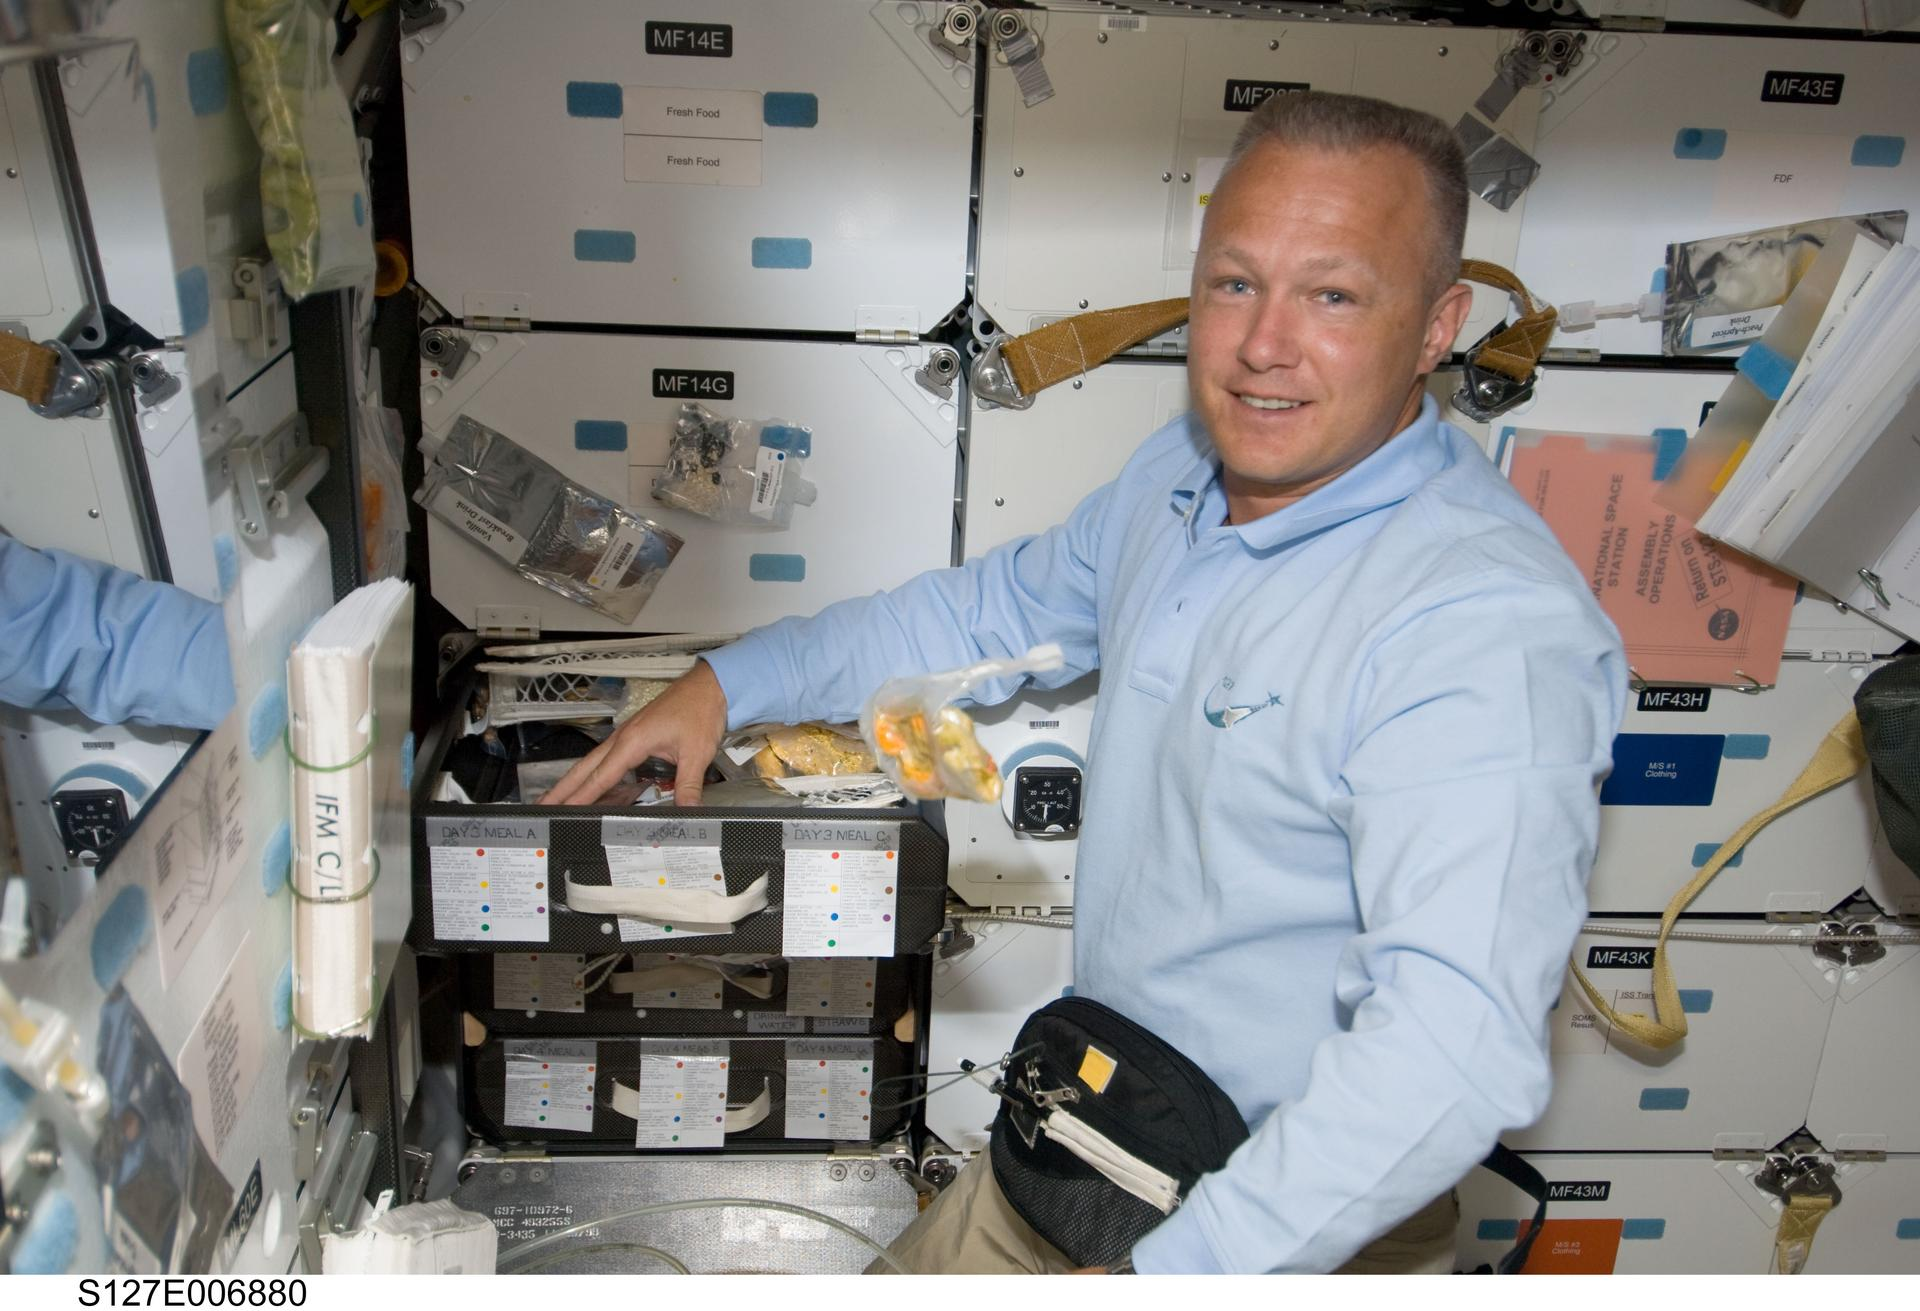 A younger Hurley on the space shuttle's mid deck on STS-127 in 2009.